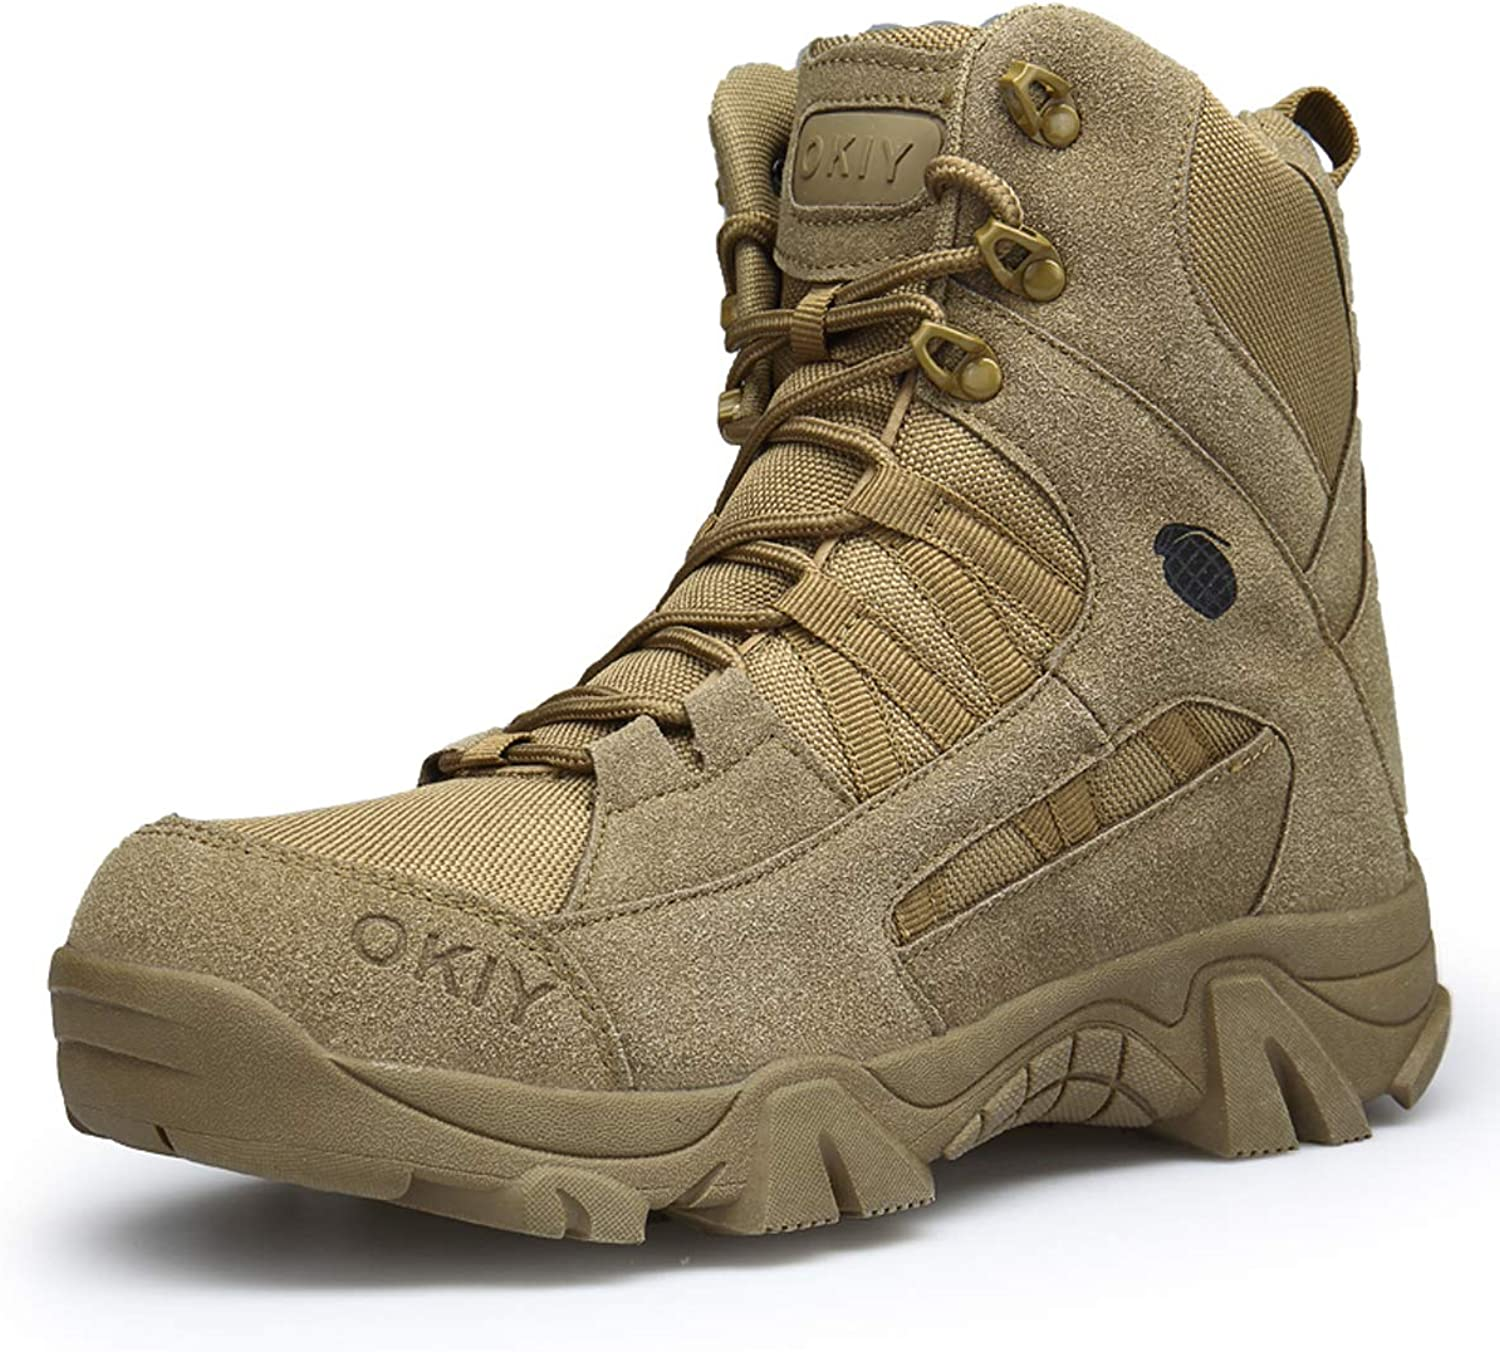 Men's Combat Boots 2019 Spring And Autumn New High To Help Outdoor Tactical Boots Non-slip Military Boots Wear Camping Men's shoes